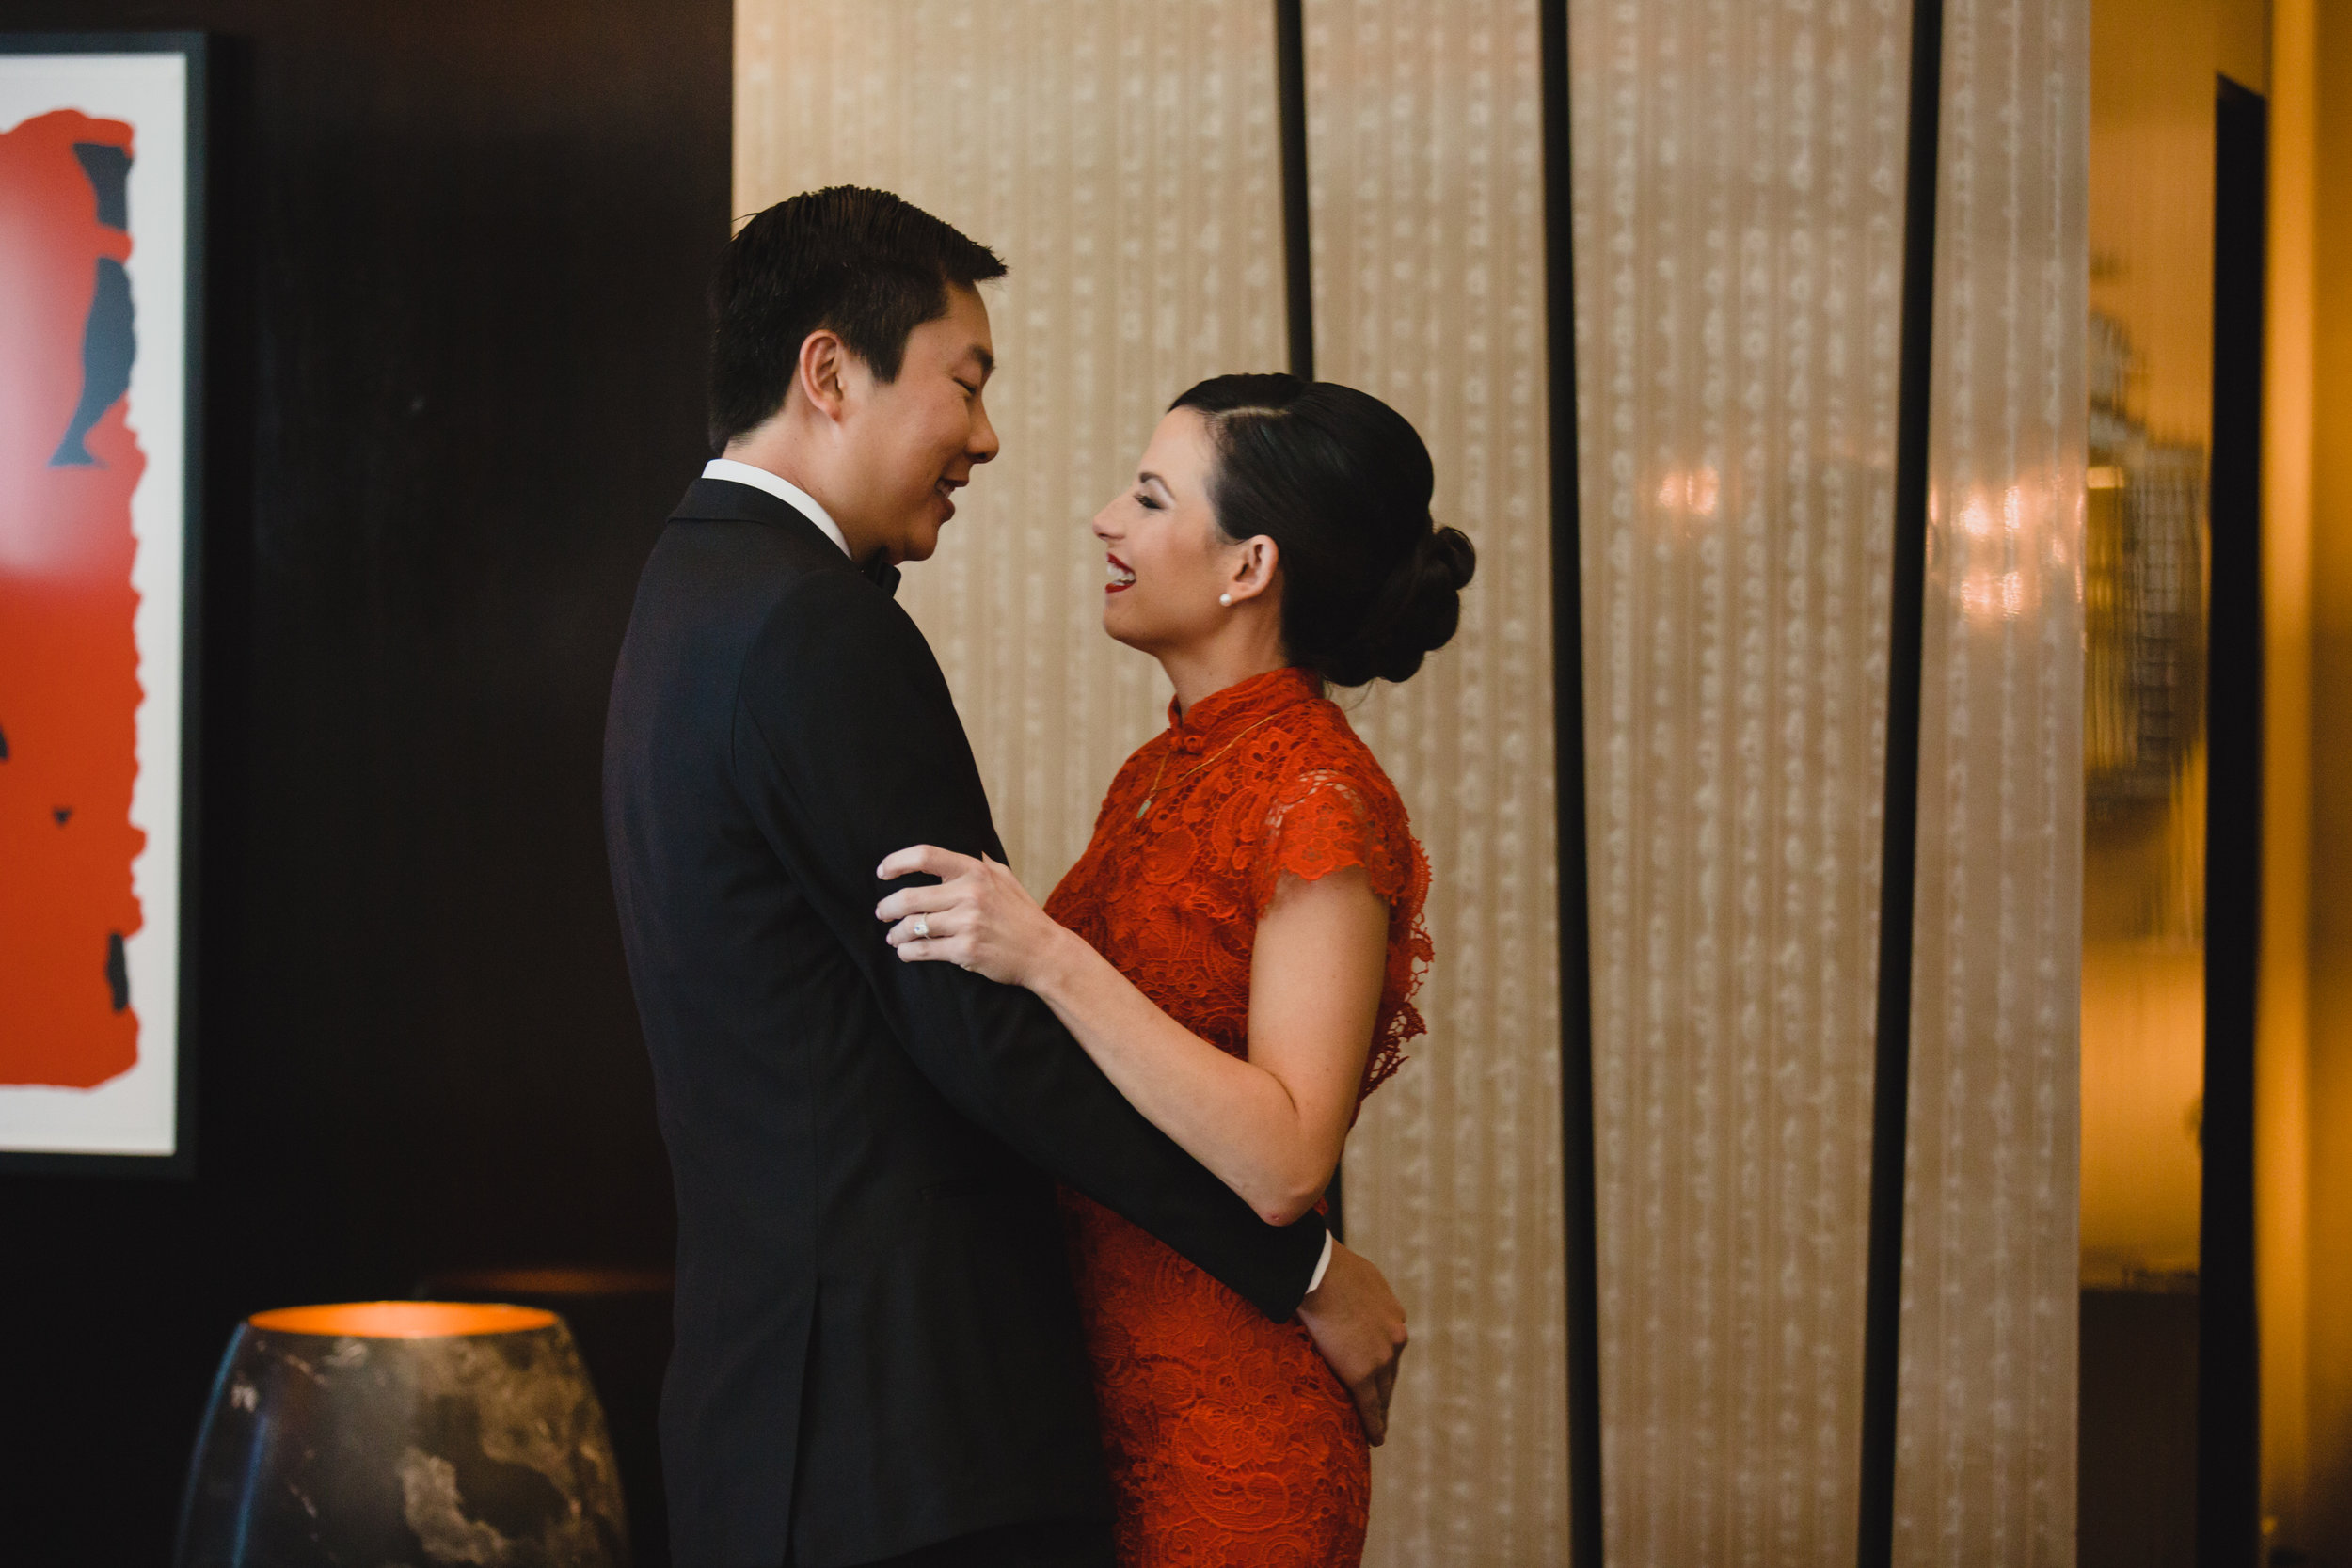 Chinese Tea Ceremony.Luxury wedding at the Mandarin Oriental with a color scheme of white, blush, and pops of wine red produced by Las Vegas Wedding Planner Andrea Eppolito with photos by Stephen Salazar Photography.